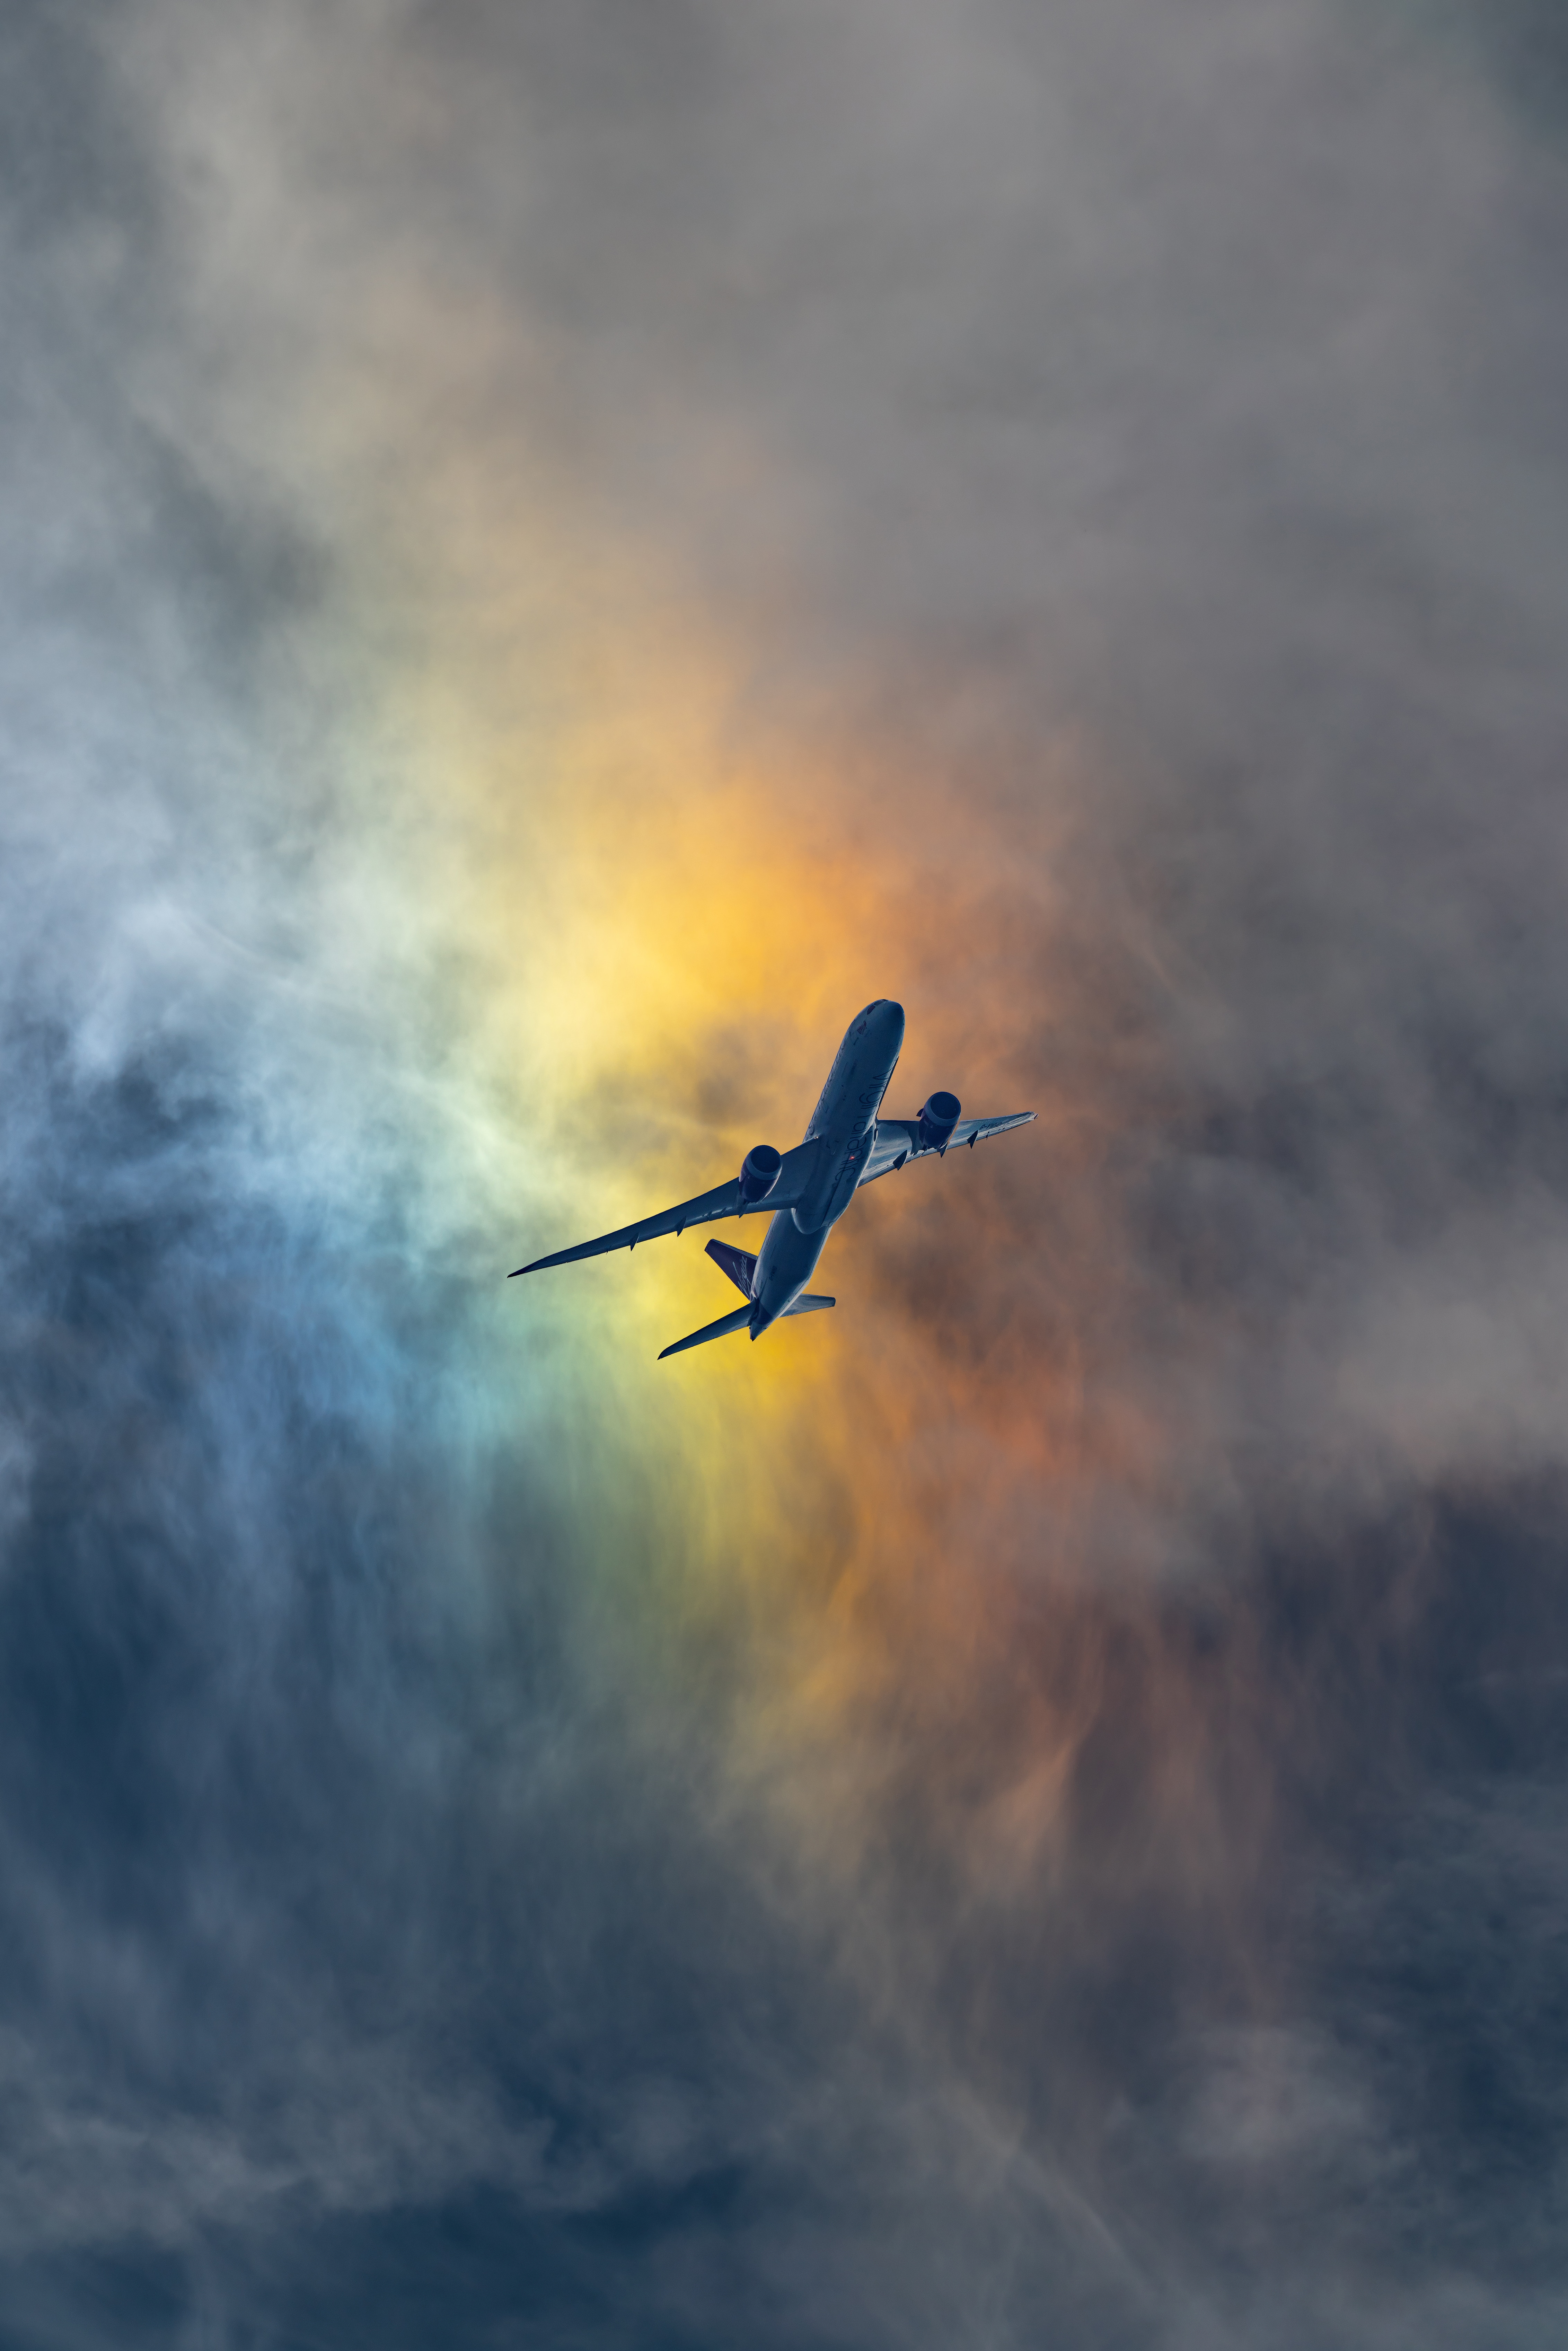 99868 Screensavers and Wallpapers Shroud for phone. Download Sky, Clouds, Miscellanea, Miscellaneous, Flight, Plane, Airplane, Shroud pictures for free